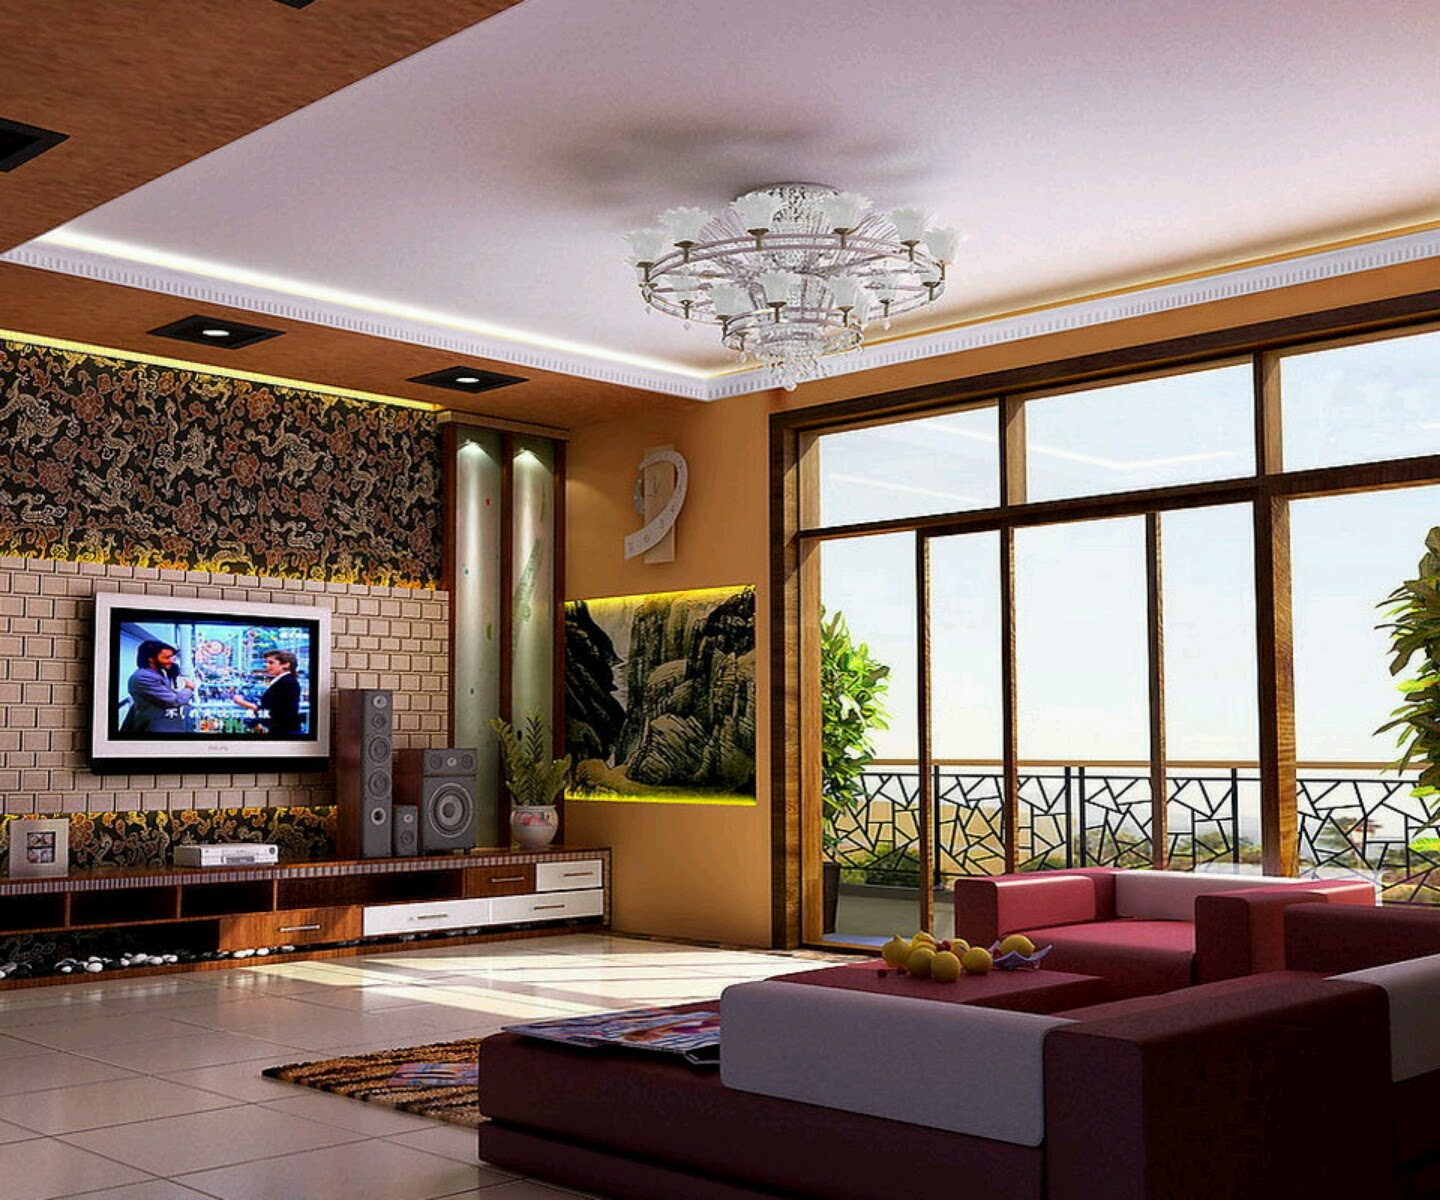 5 Contemporary Living Room Ideas 2014 | Home Design HD Wallpapers